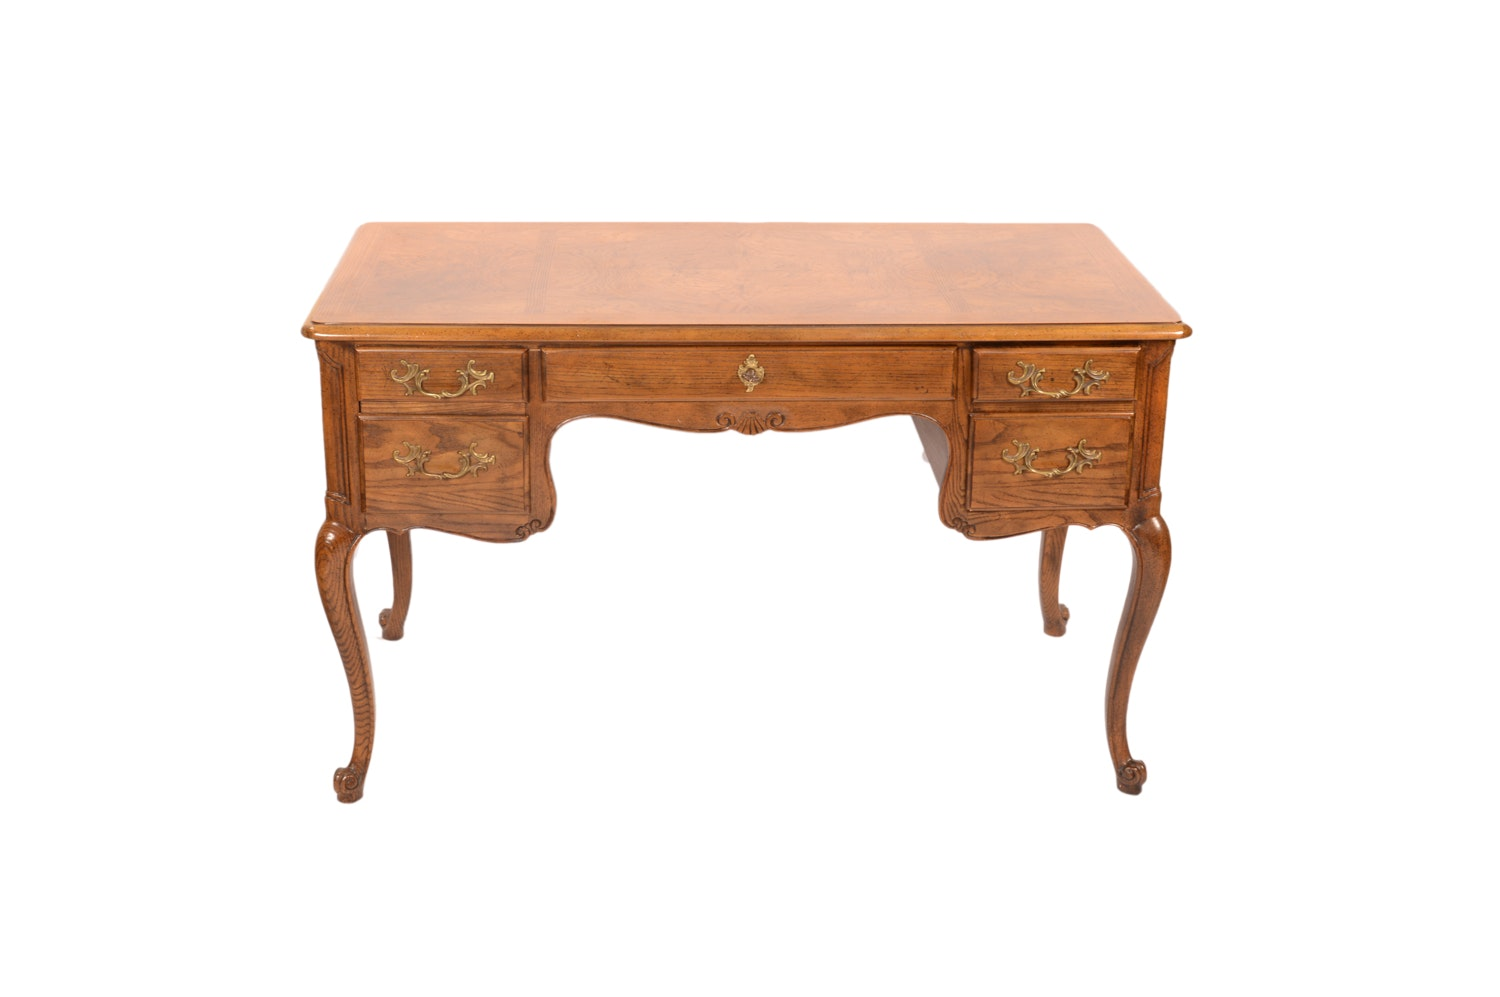 Vintage Louis XV Style Desk by Baker Furniture